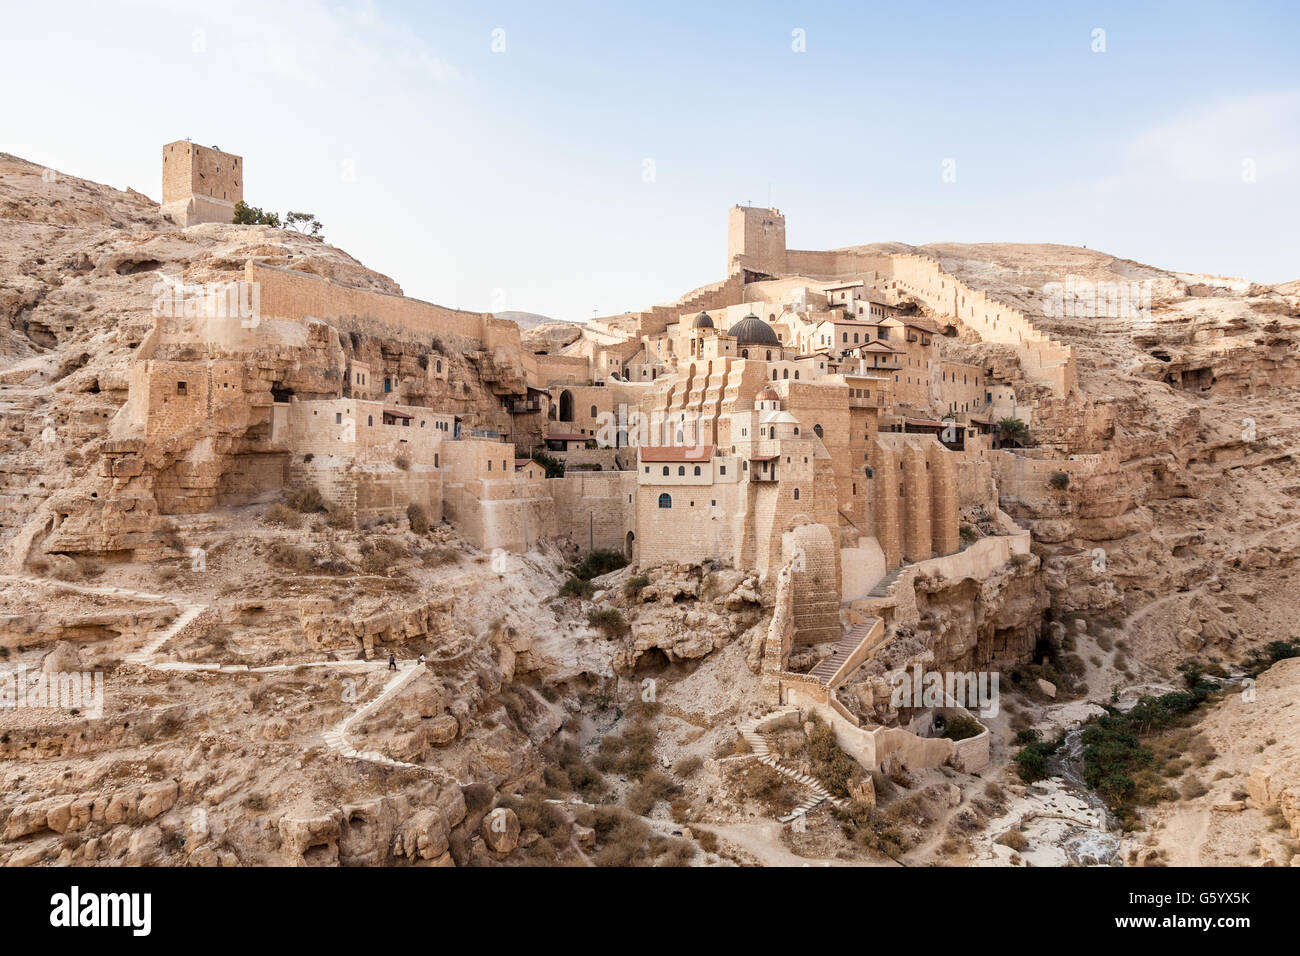 Judean desert east from Jerusalem and west from Dead Sea with Kidron Valley and Mar Saba Monastery in Palestine - Stock Image